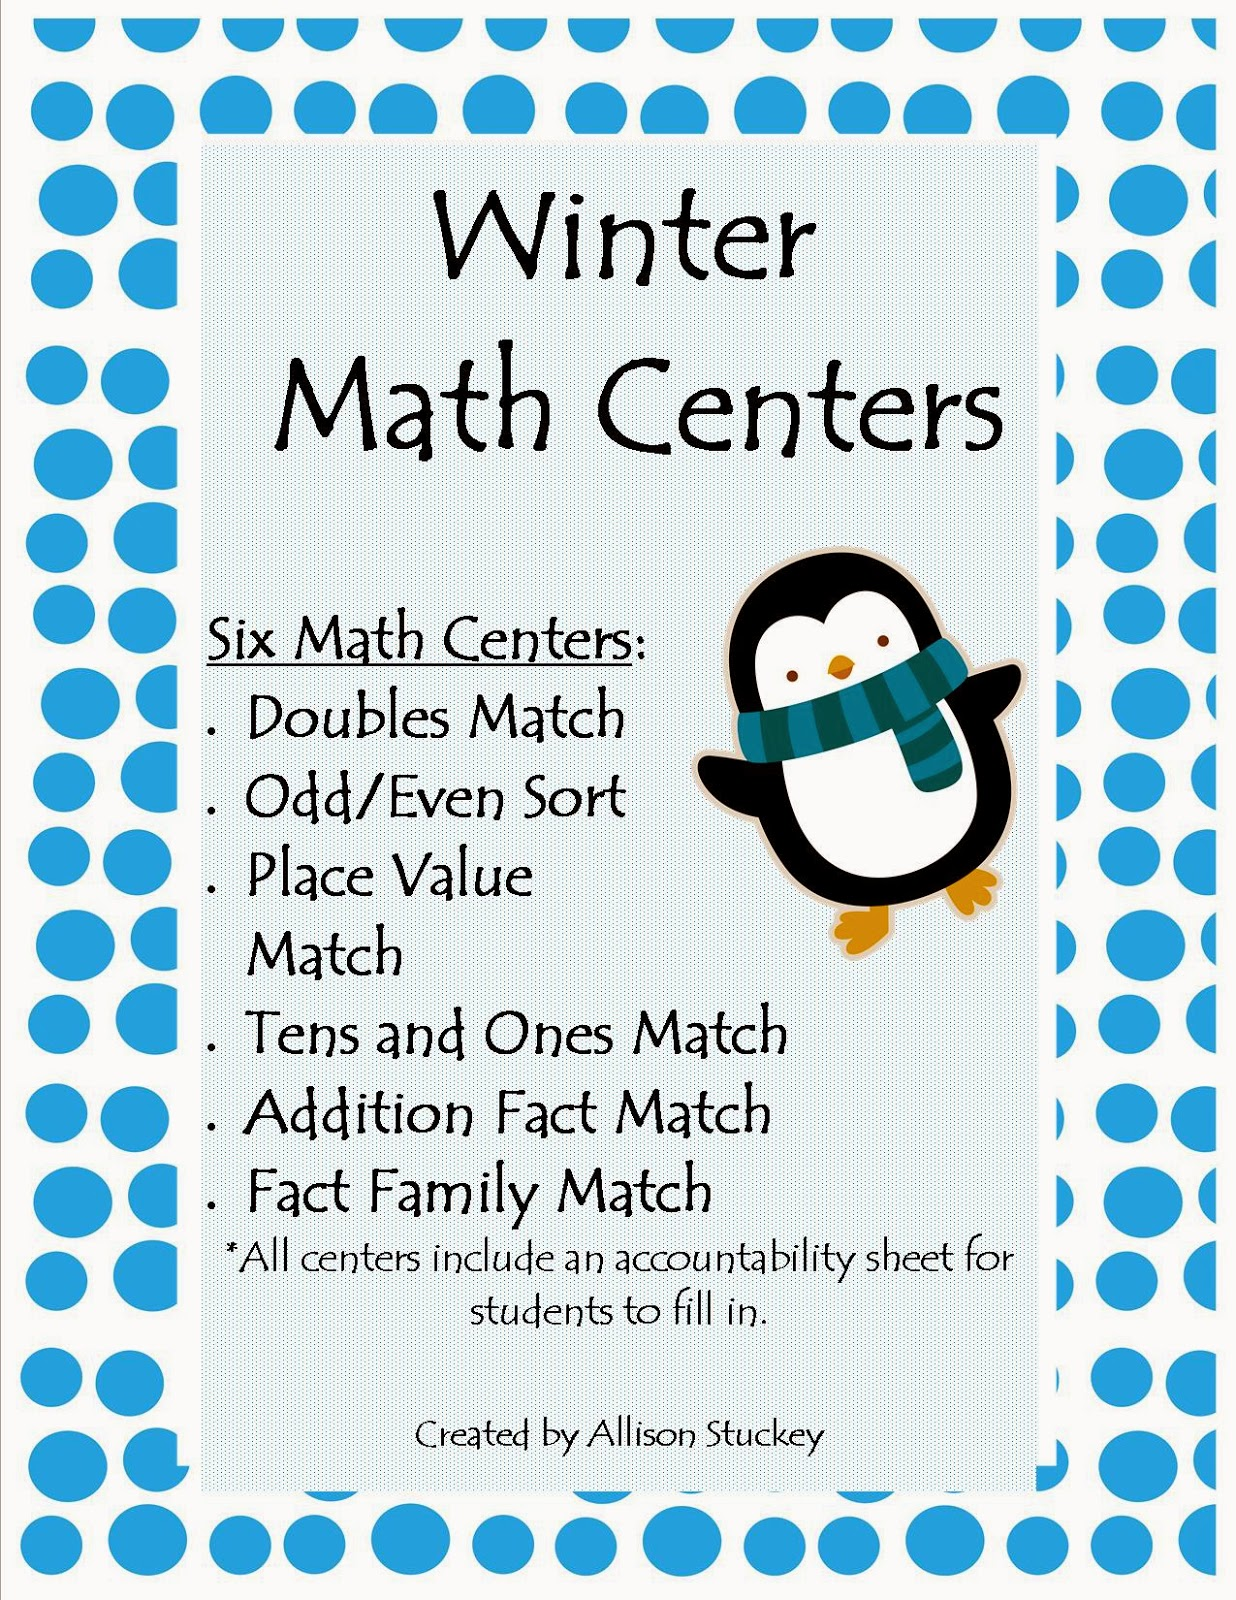 http://www.teacherspayteachers.com/Product/Winter-Math-Centers-for-1st-and-2nd-Graders-363498